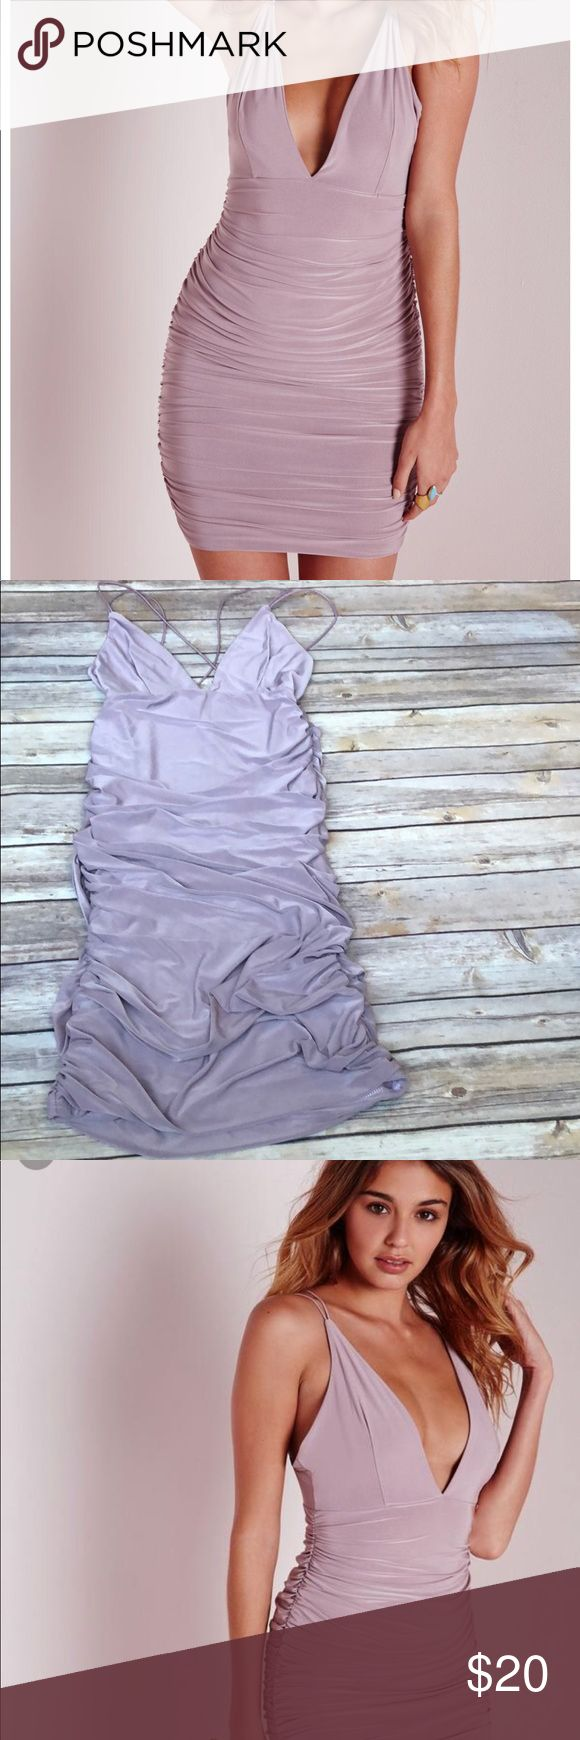 Missguided dress Size: 4 UK Brand: missguided New with tags Missguided Dresses Mini